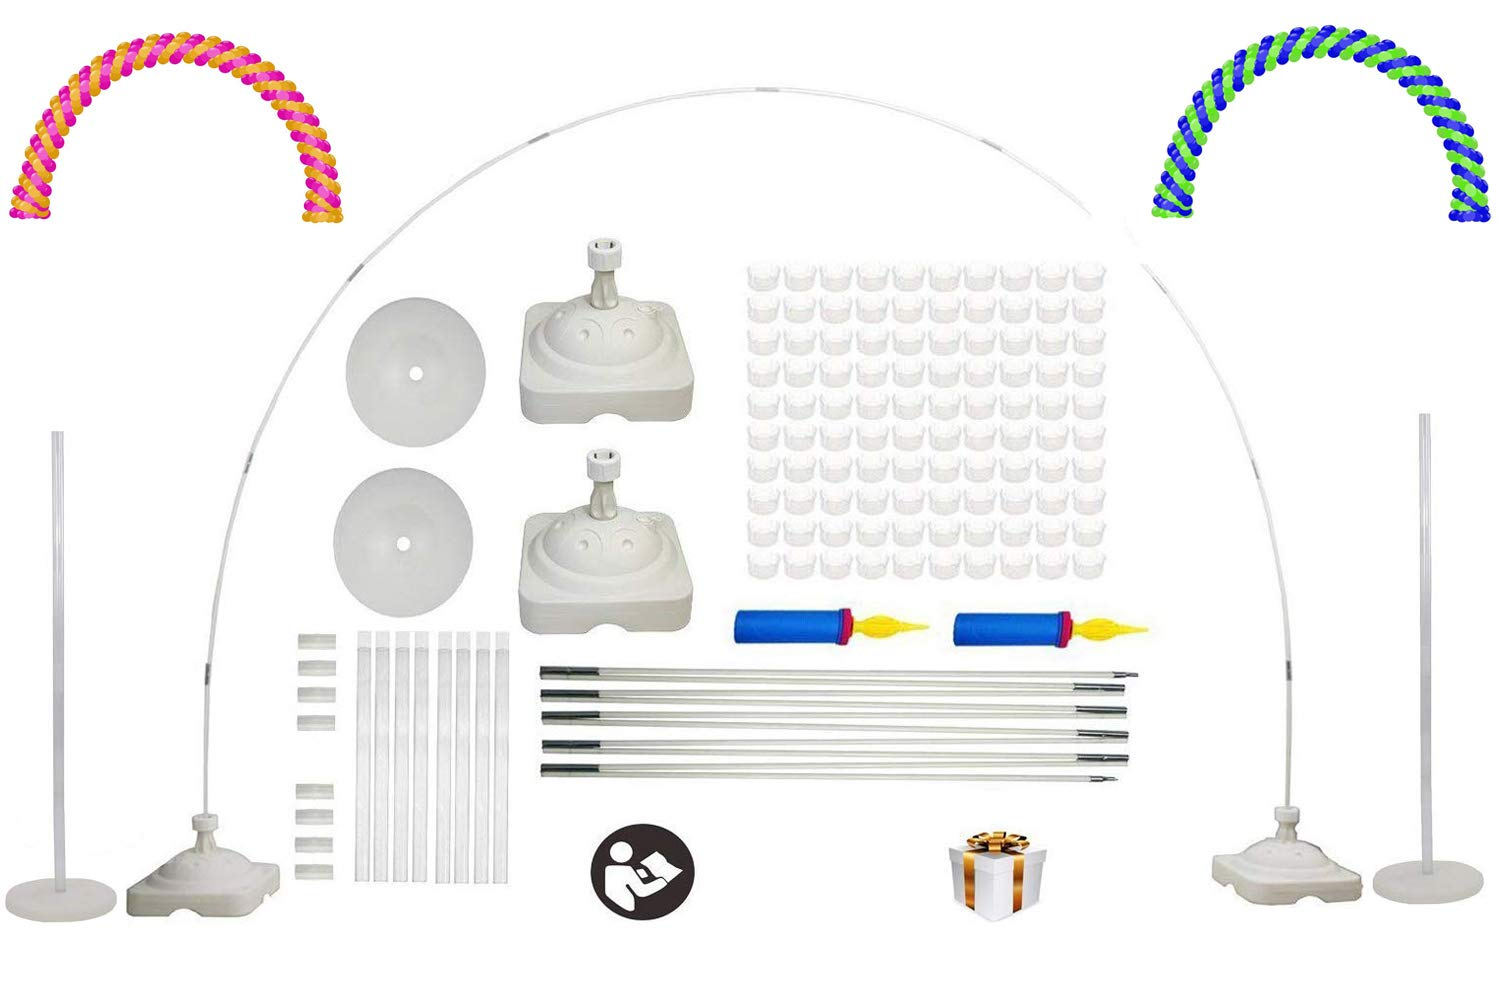 LANGXUN Large Size Balloon Arch Kit And Balloon Column Stand Kit For Birthday Decorations Wedding Decorations Event Party Supplies Graduation Party Decorations